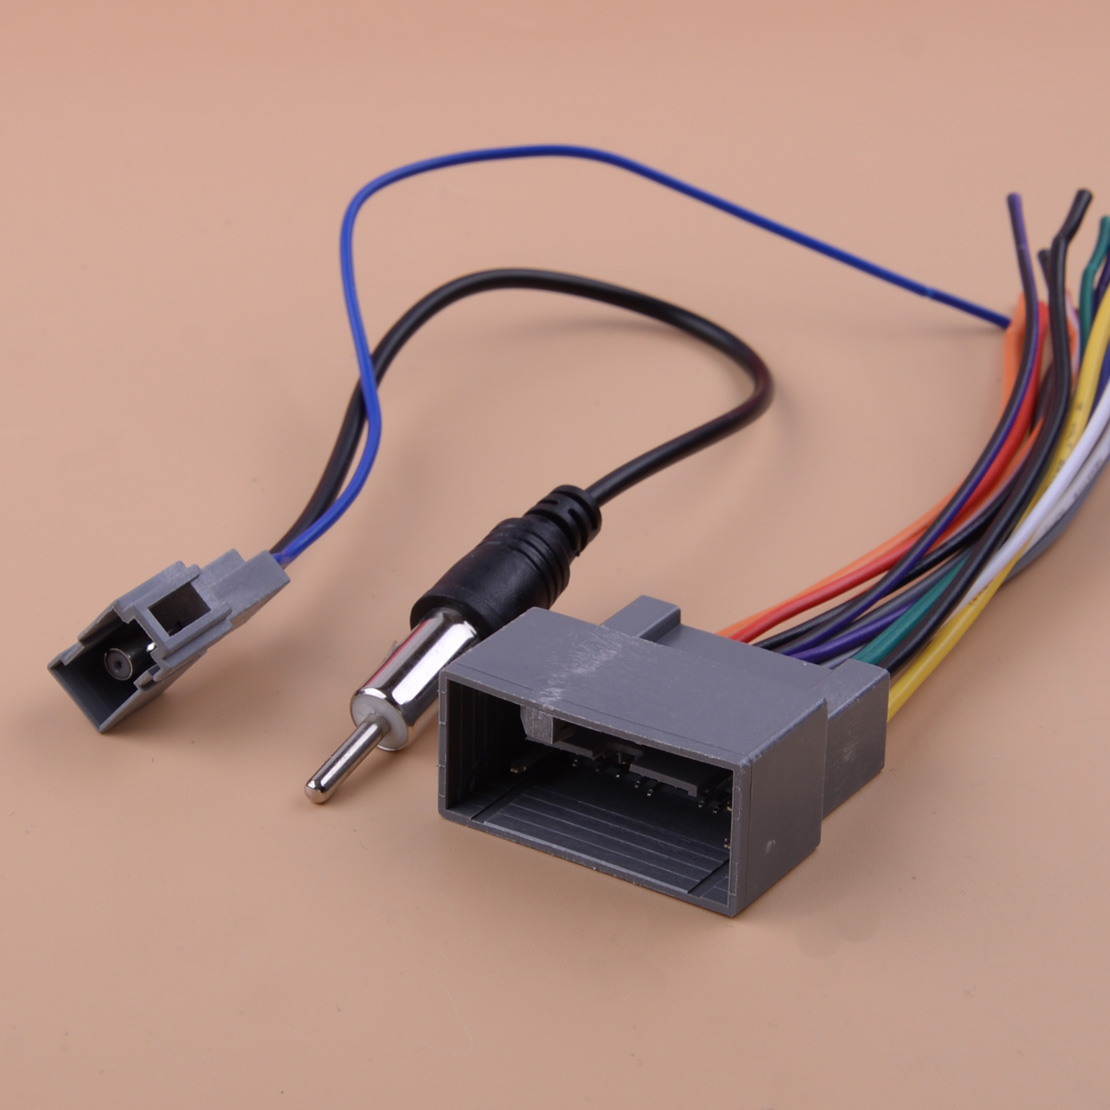 2 pcs <font><b>Radio</b></font> Stereo Wire Wiring Harness Cable Antenna <font><b>Adapter</b></font> Fit For <font><b>Honda</b></font> Civic CRV Odyssey <font><b>Jazz</b></font> TSX Acura image